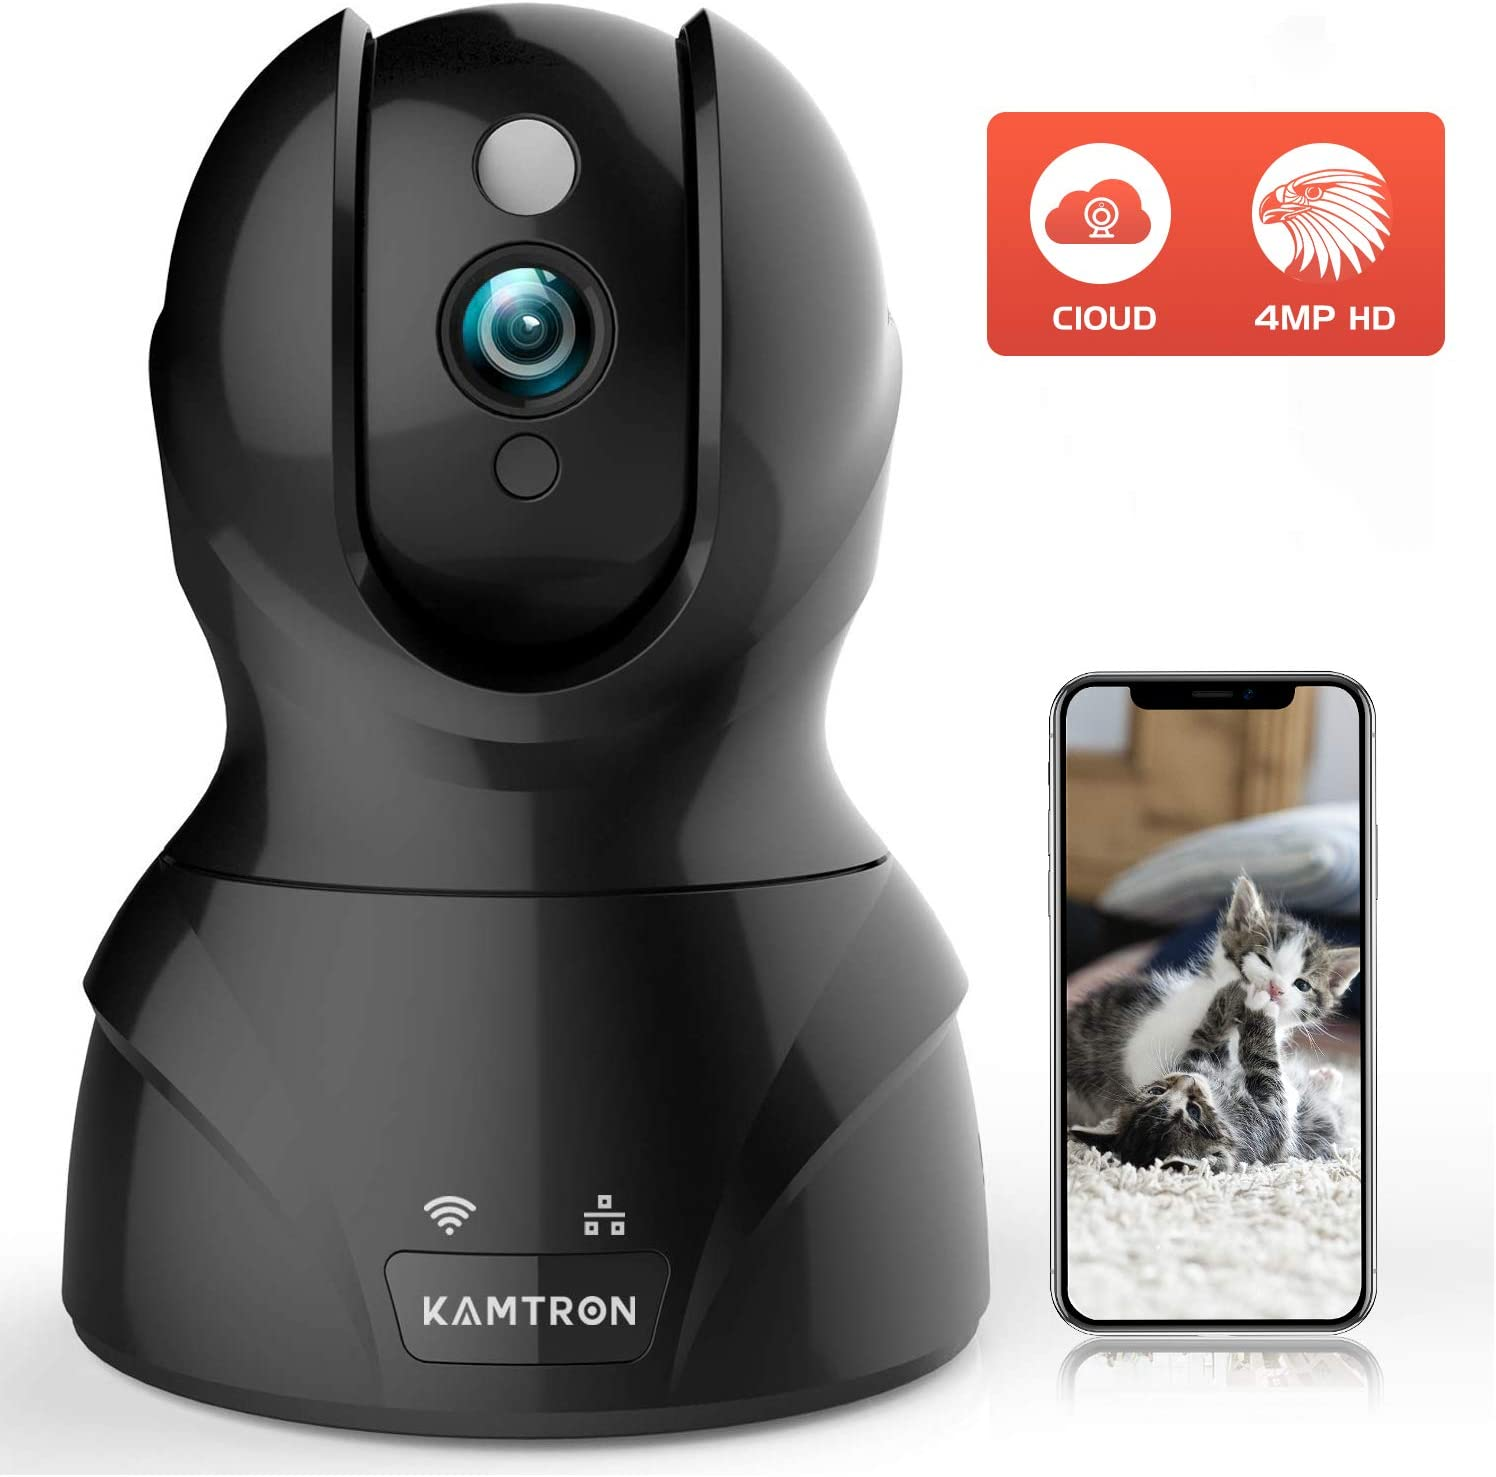 Security Cameras Pet Cameras for Homes – KMARON 4MP HD WiFi Dog Camera Night Vision Pan Tilt Zoom Motion Detection with 2 Way Audio – Cloud Service Available